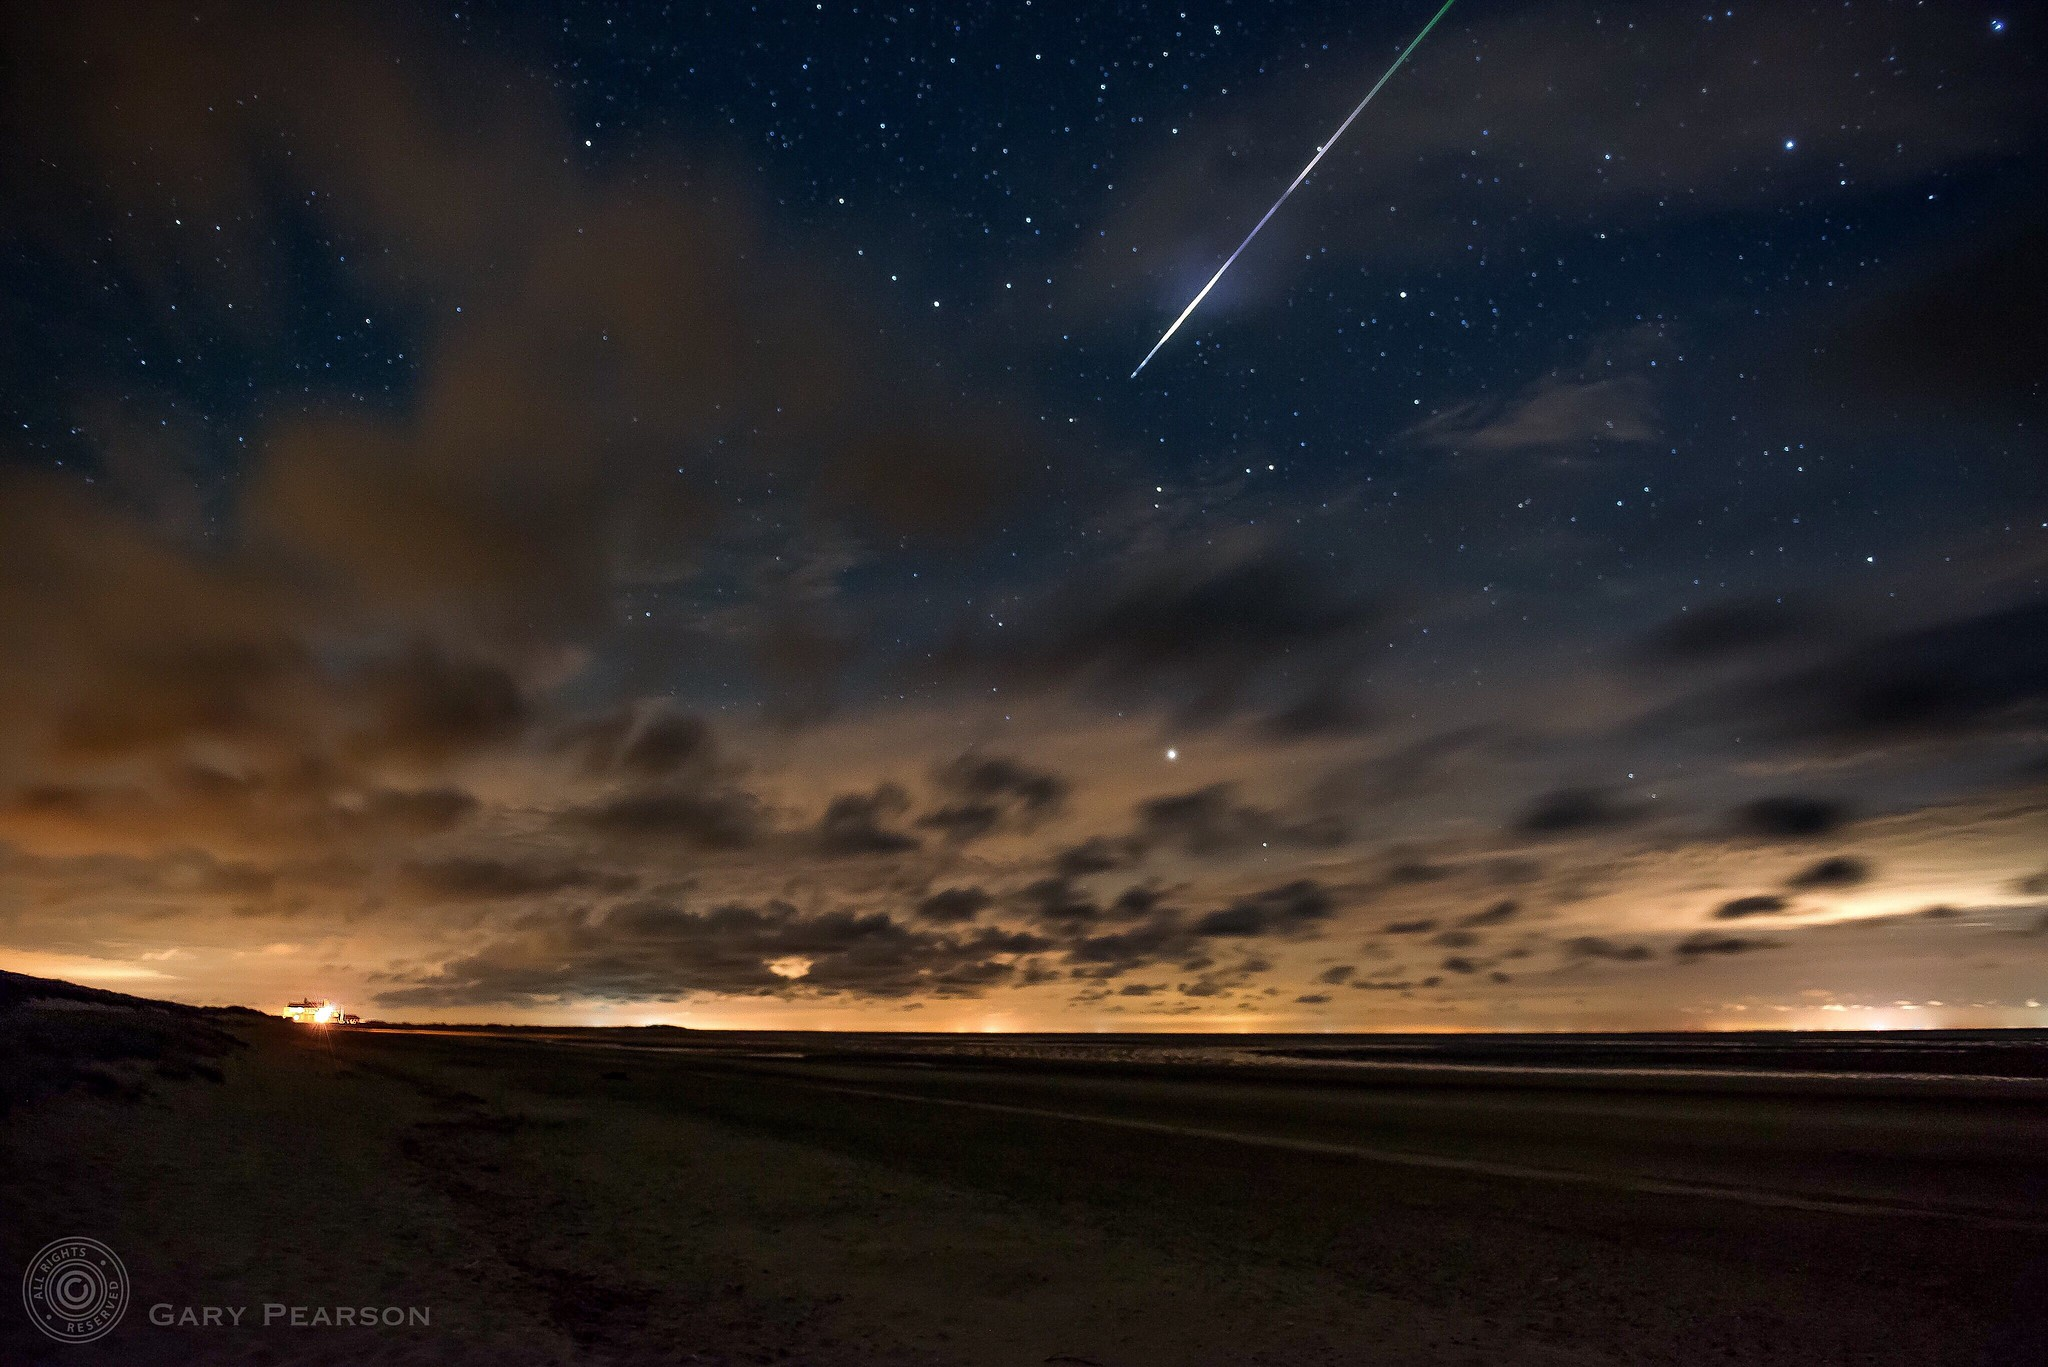 A Perseid meteor over Brancaster